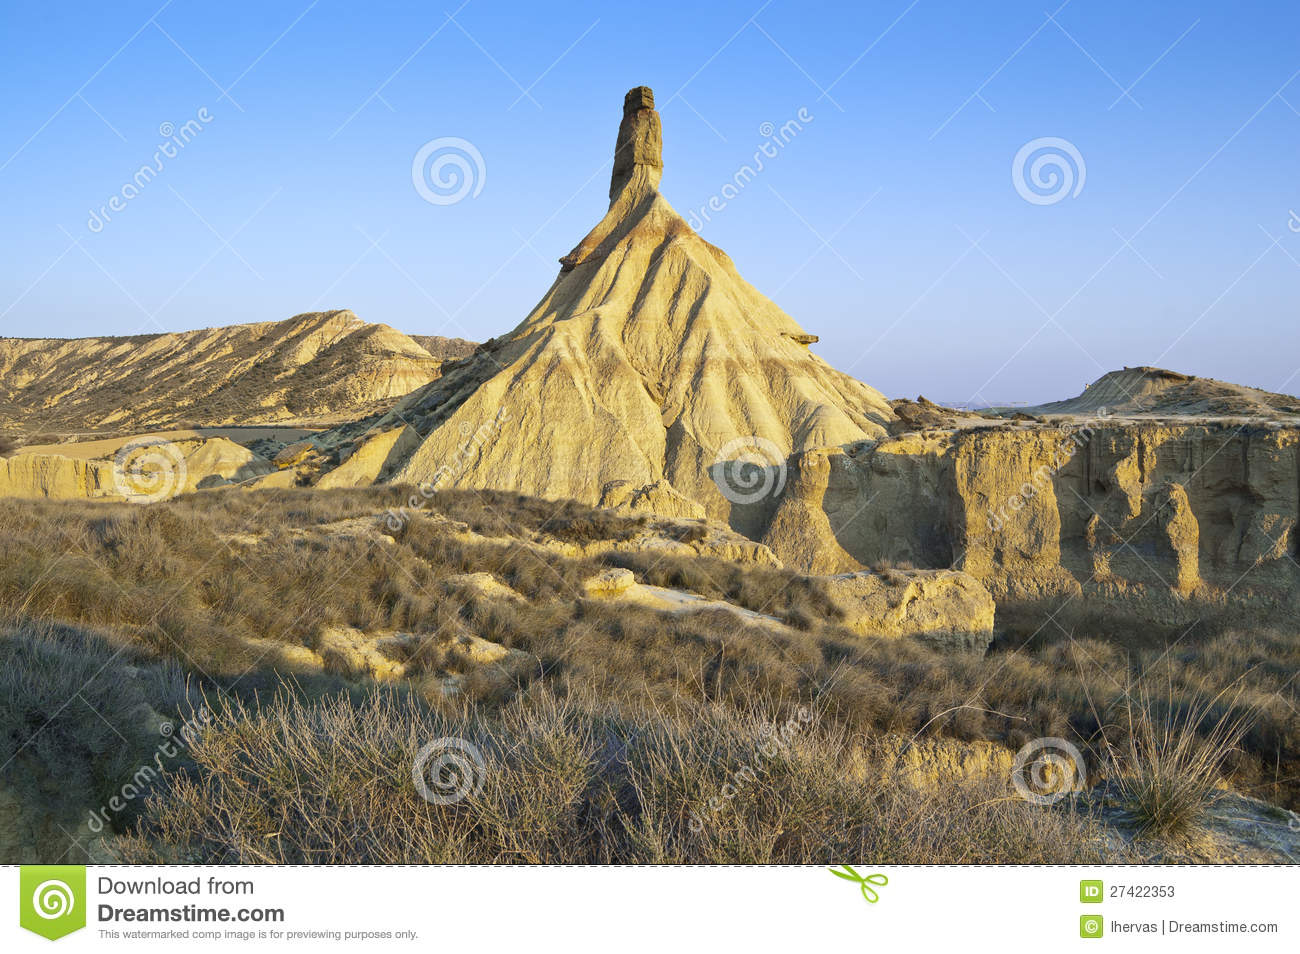 Semi-desert landscape in bardenas reales, navarre, spain. the bardenas